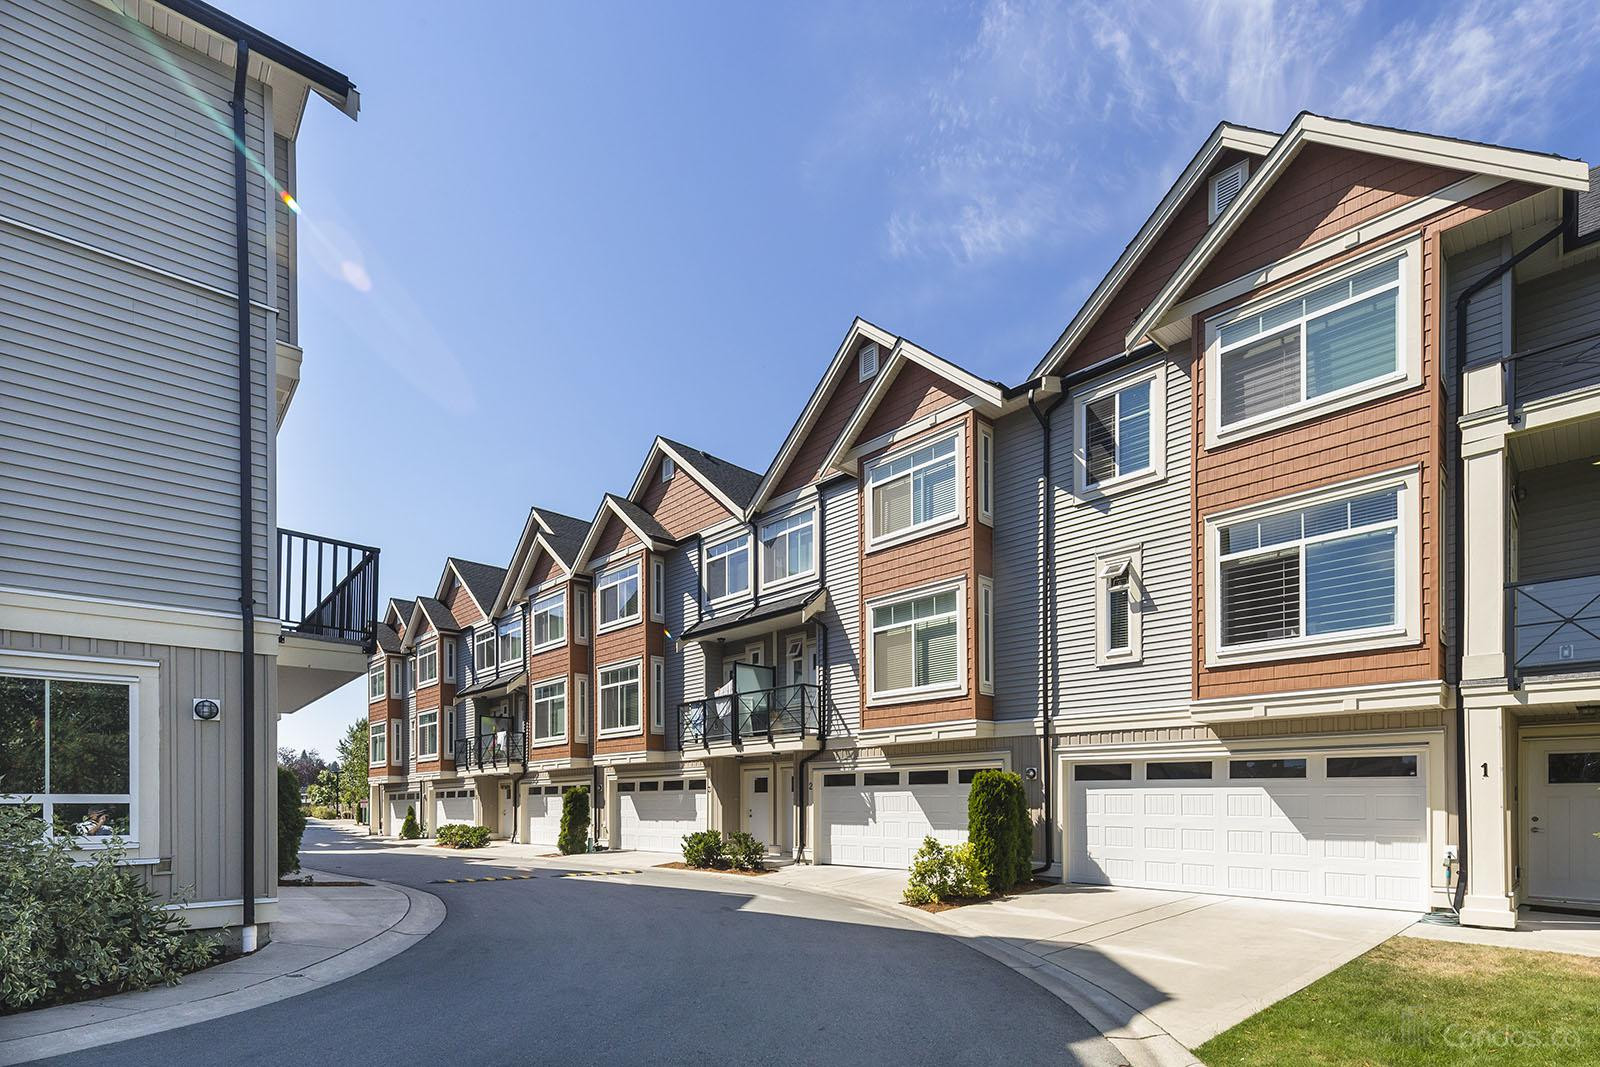 The Walks at 12091 70 Ave, Surrey 1